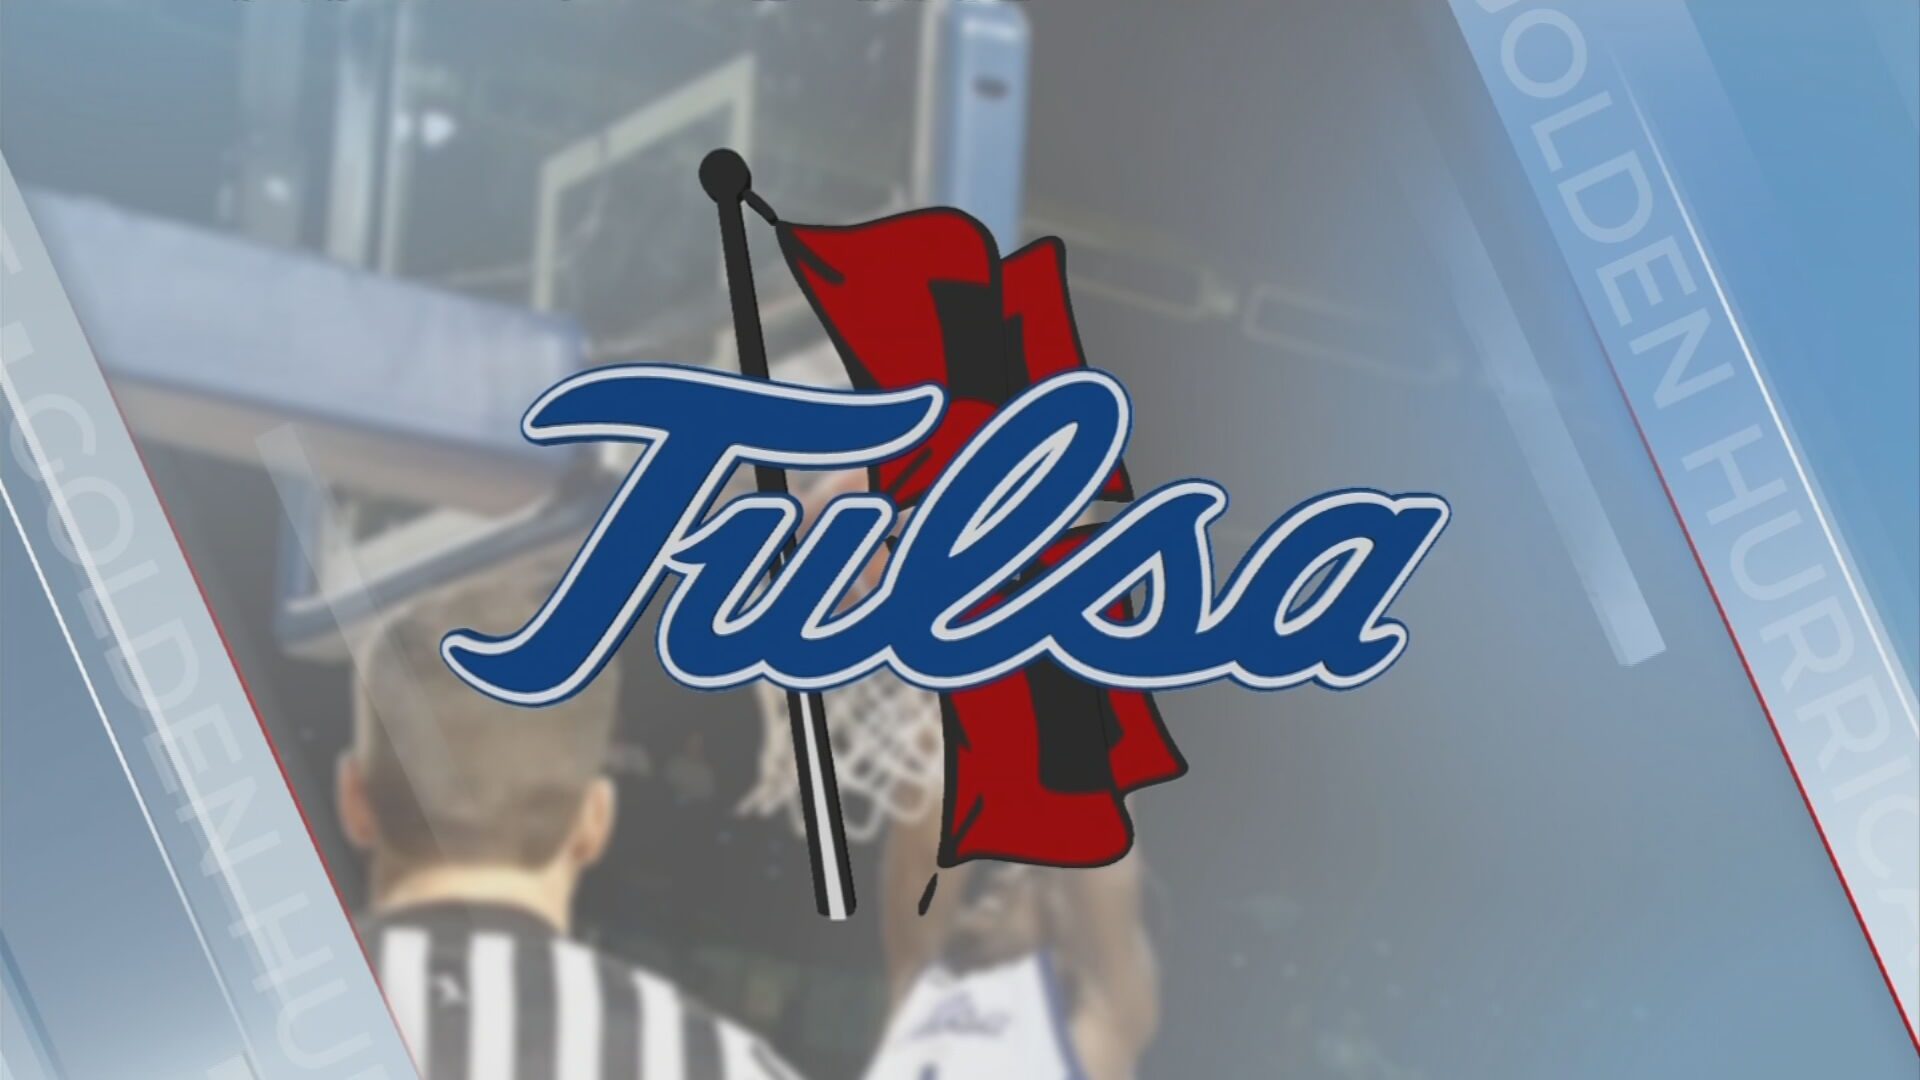 TU Names Oklahoma Native Angie Nelp New Women's Basketball Coach